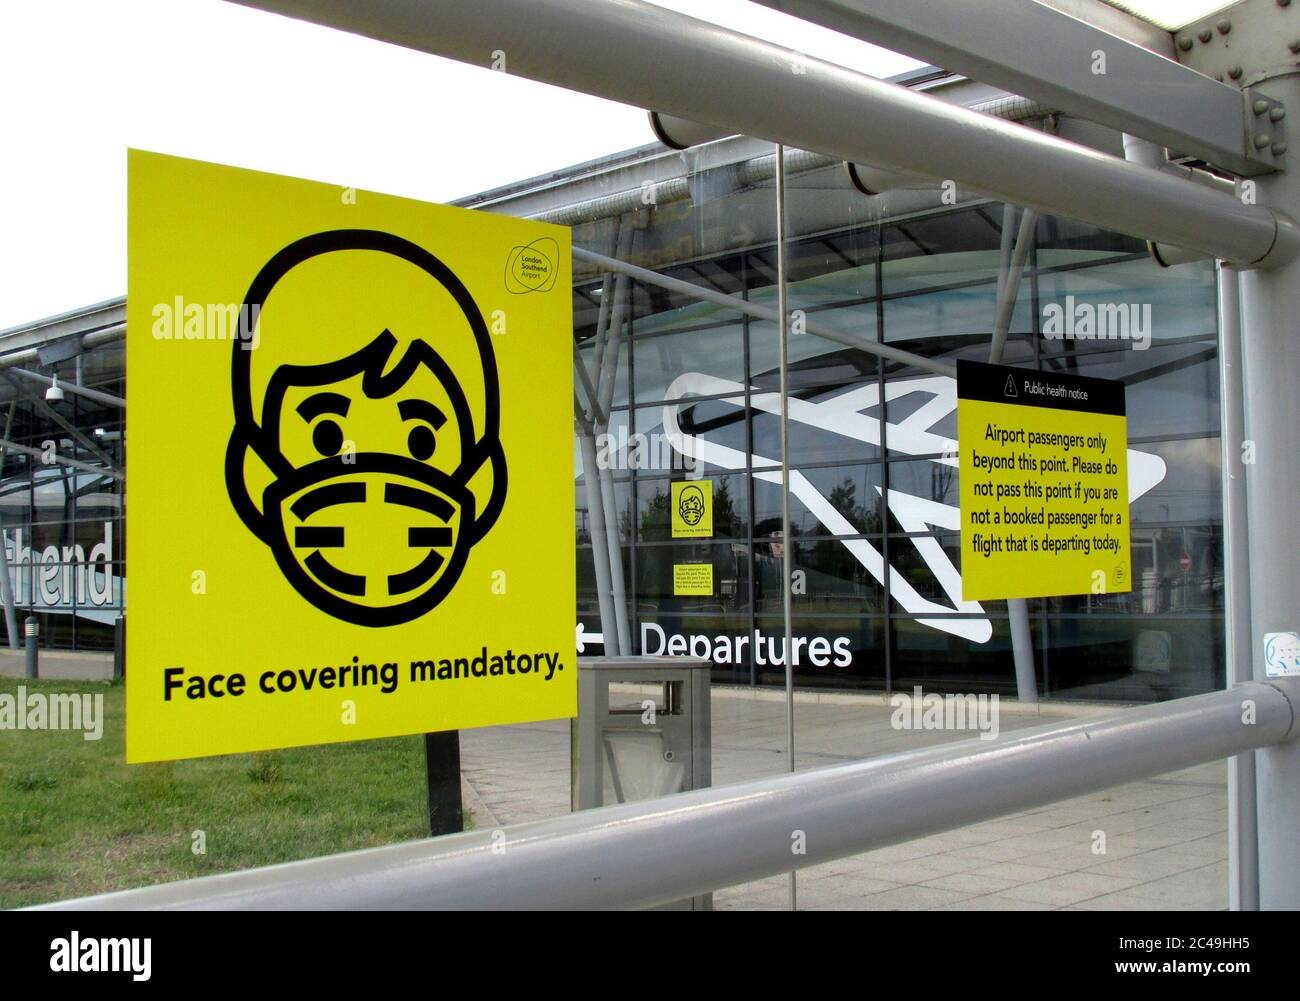 London Southend airport have made their terminal covid-19 secure by mandatory face coverings and only passengers with flights allowed inside June 2020 Stock Photo